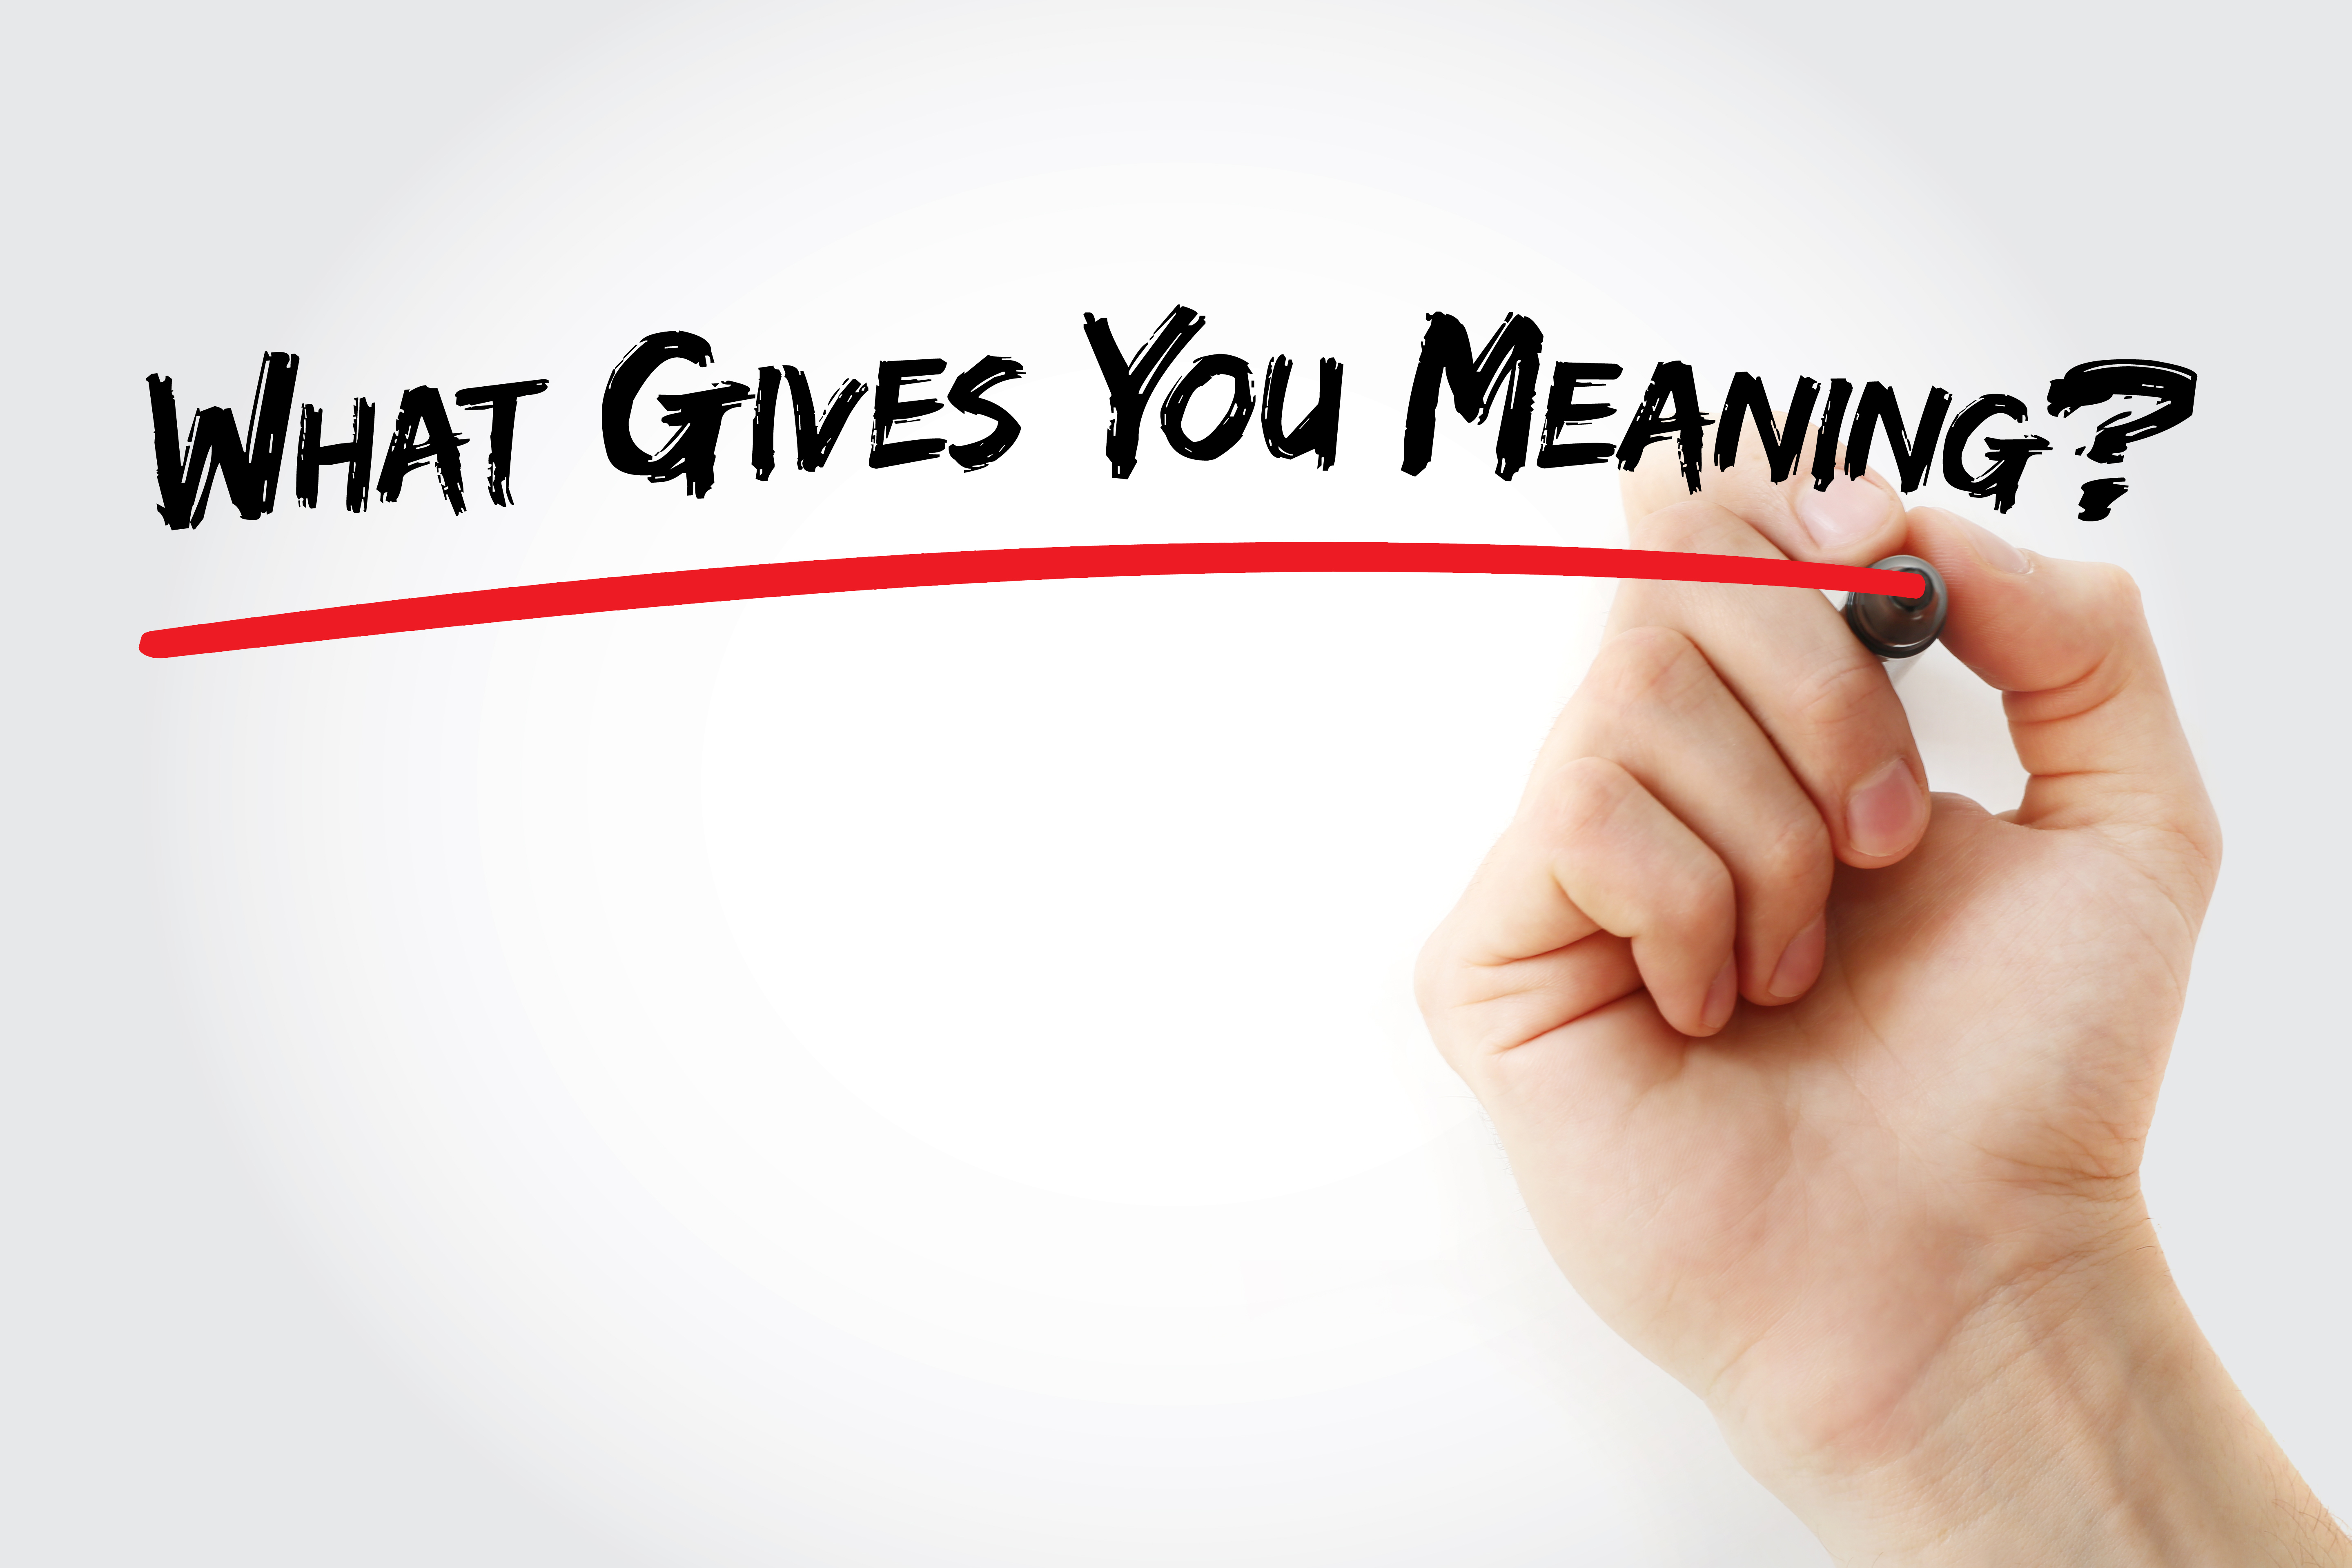 Image with the question What gives you meaning written - represents that Property Millionaire only do what gives them meaning